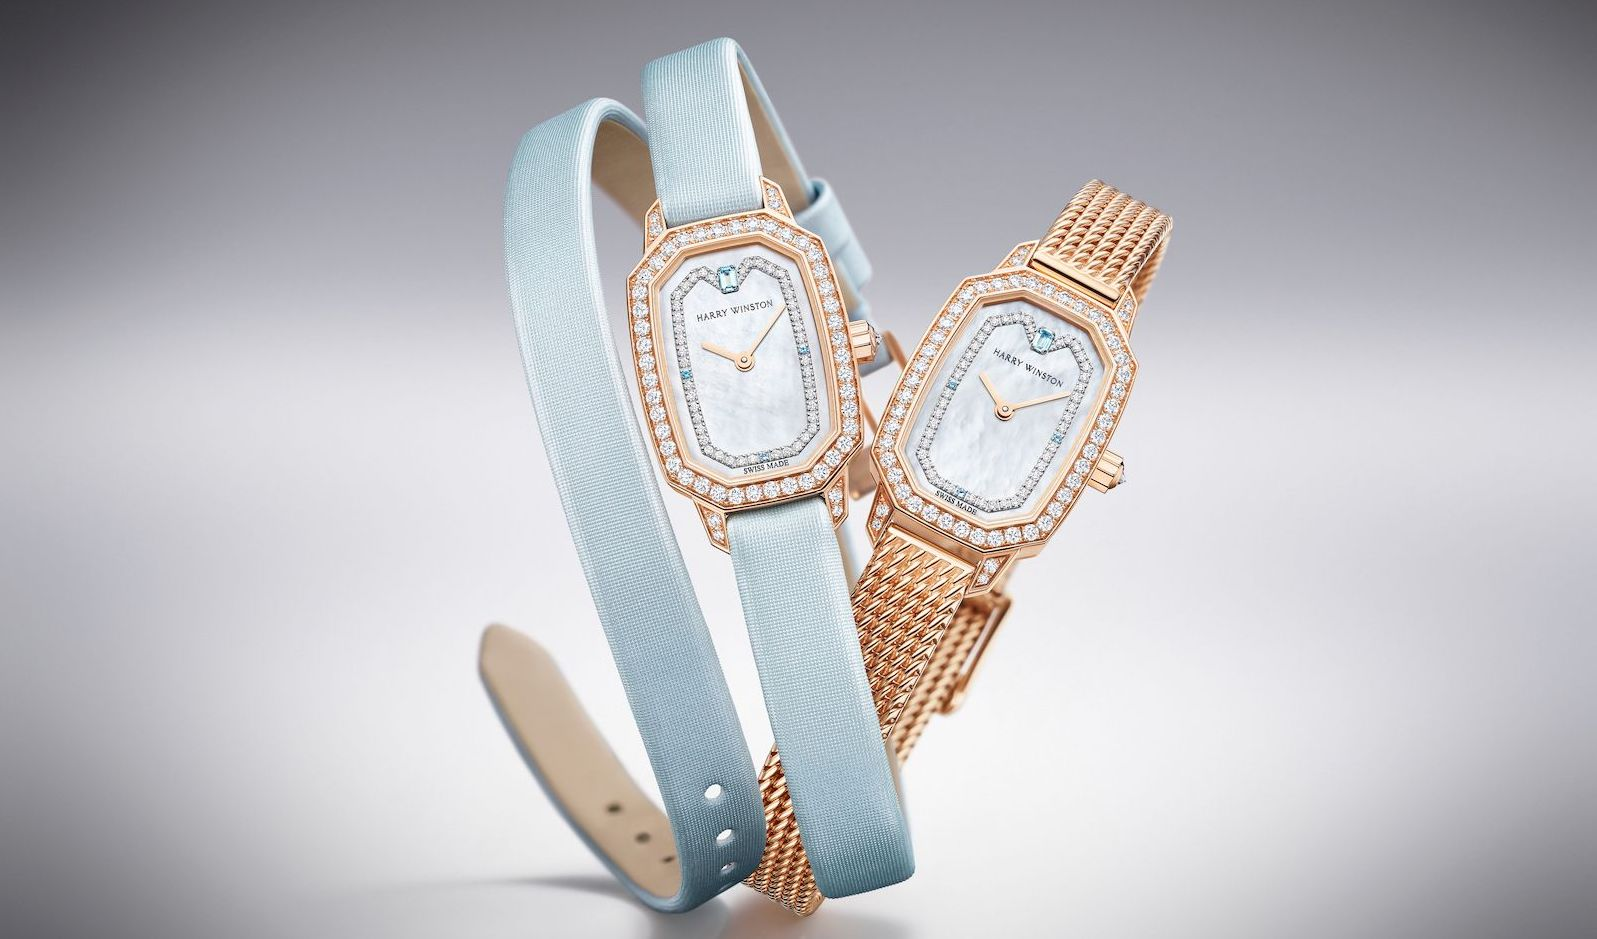 New watches added to Harry Winston Emerald collection